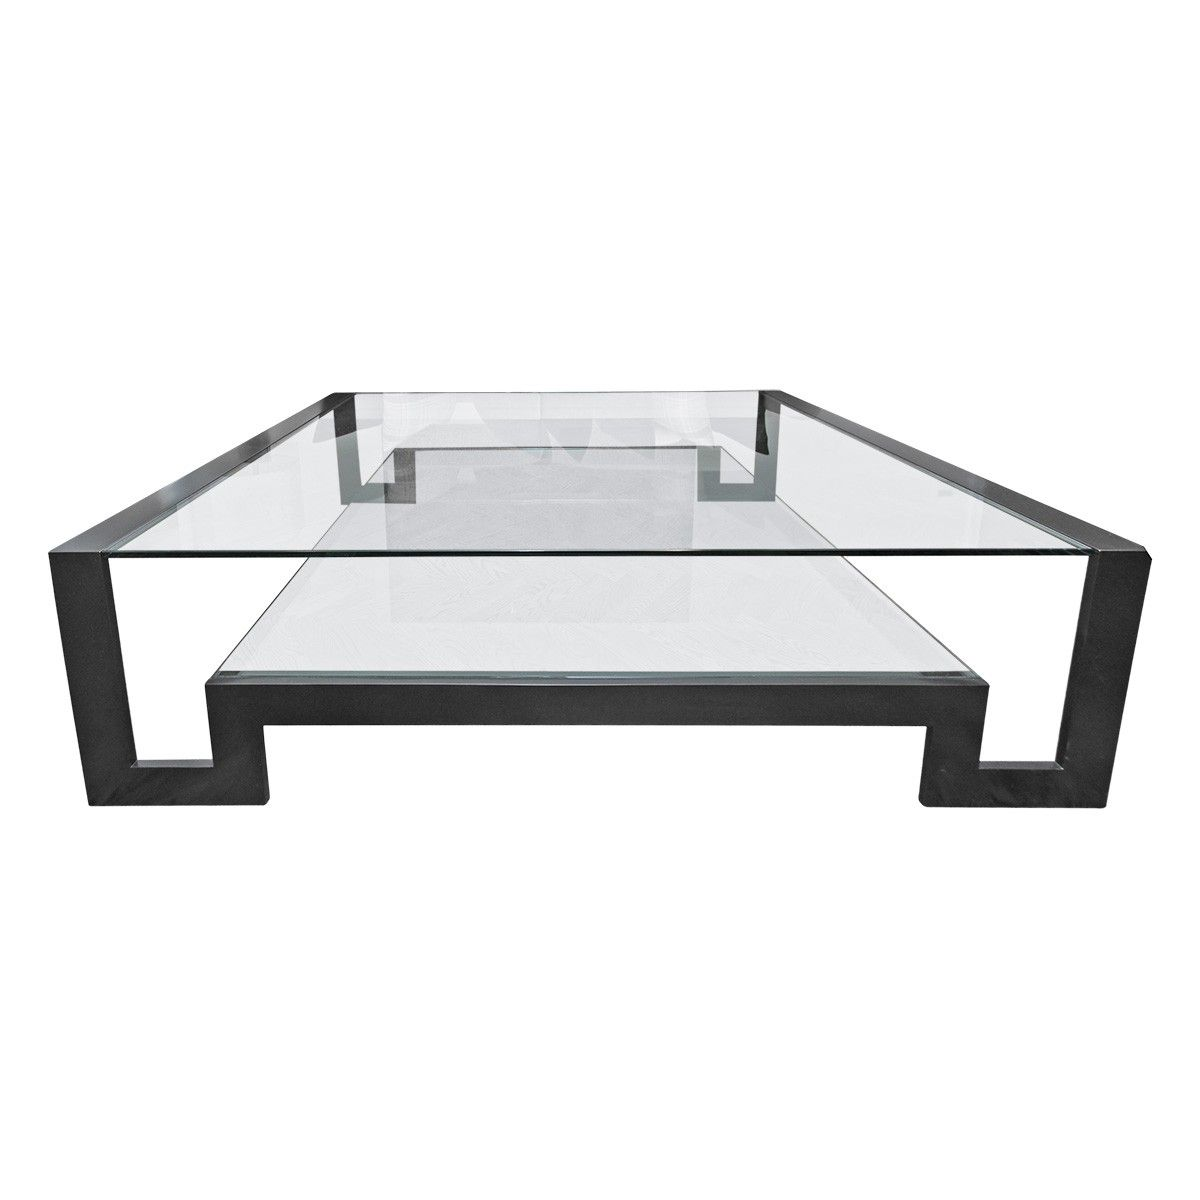 Merveilleux Viyet   Luxury Furniture Consignment   Tables   John Boone Two Tier Coffee  Table